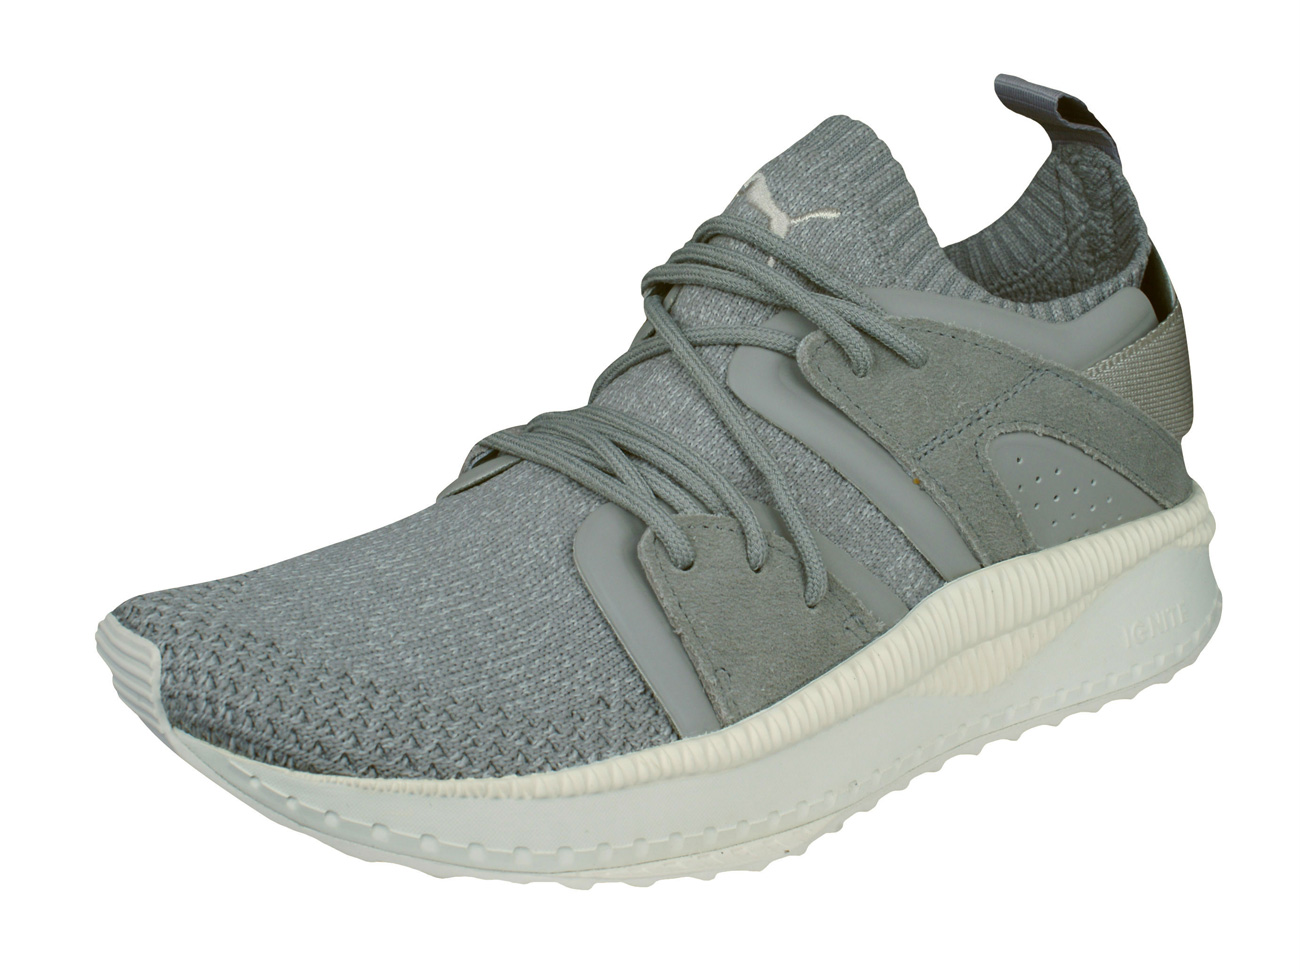 Mens Puma Trainers Tsugi Blaze evoKNIT Training Shoes - Grey at ... 64d55f840